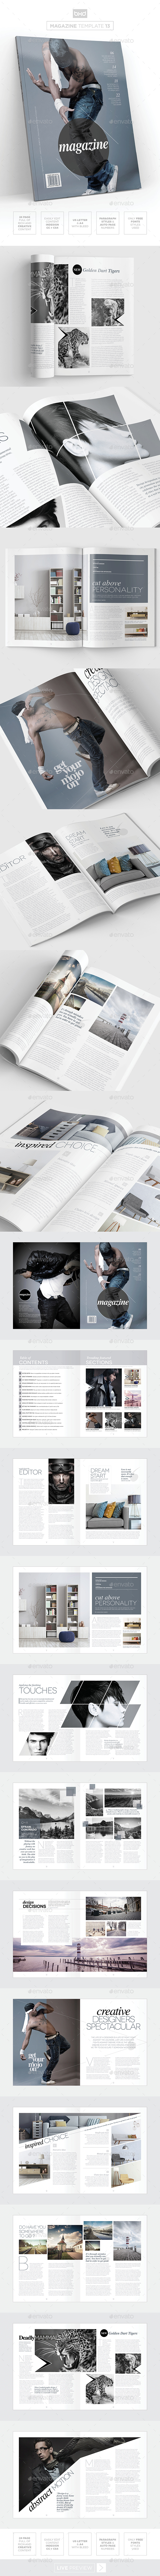 Magazine Template - InDesign 24 Page Layout V13 - Magazines Print Templates